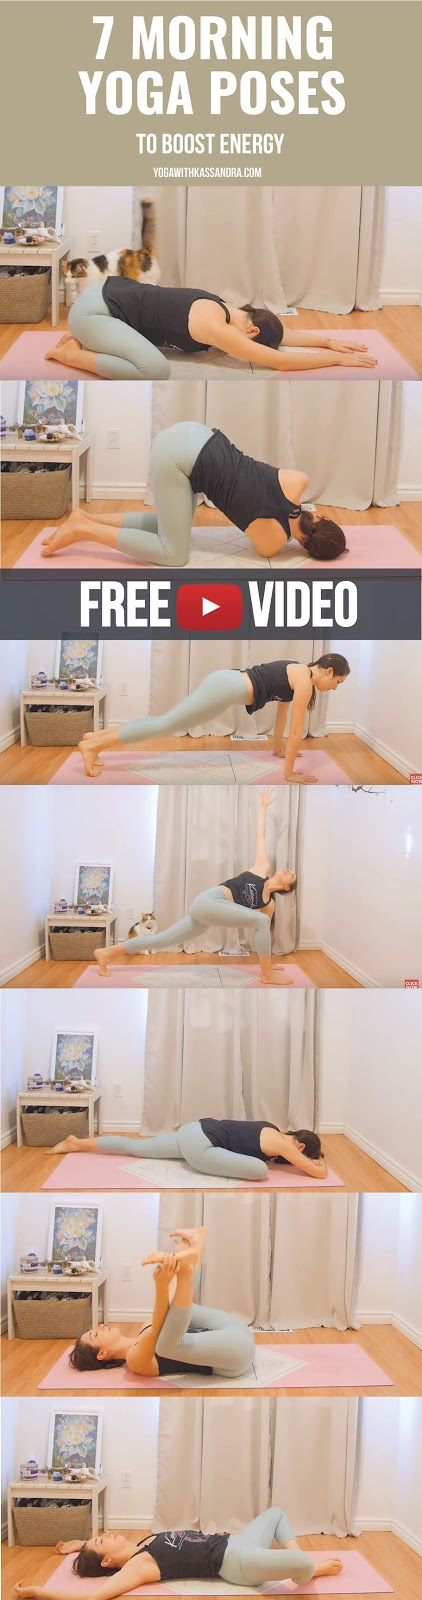 This sequence is a great way to wake up and stretch the whole body first thing in the morning. As no props are used, you can do it wherever you are.